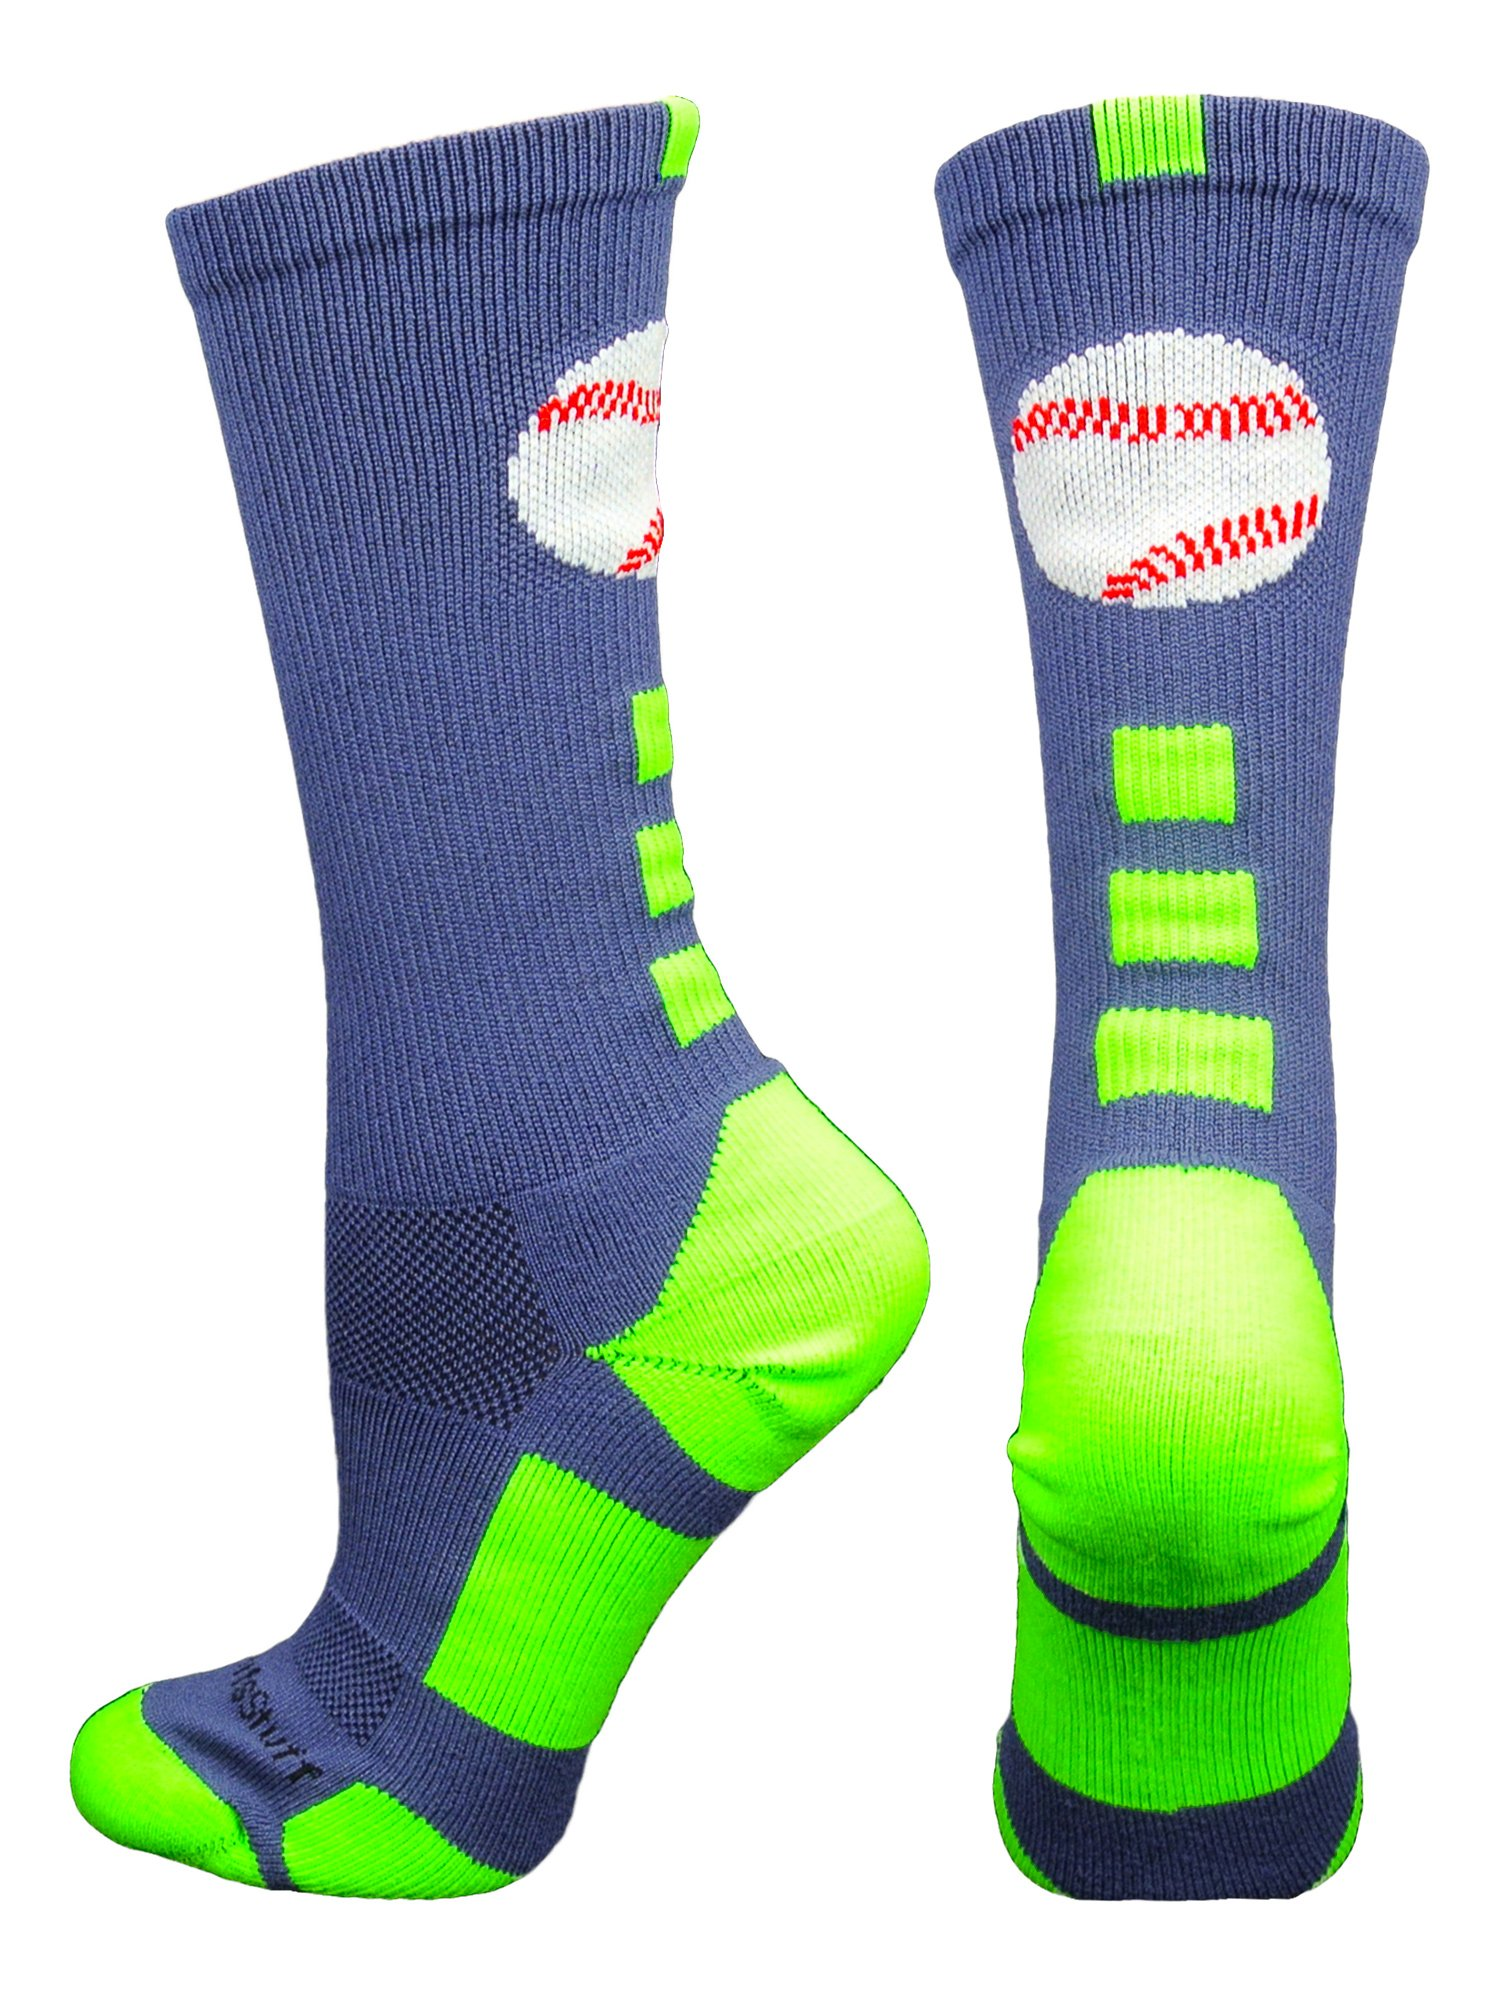 MadSportsStuff Baseball Logo Crew Socks (Navy/Neon Green, Medium) by MadSportsStuff